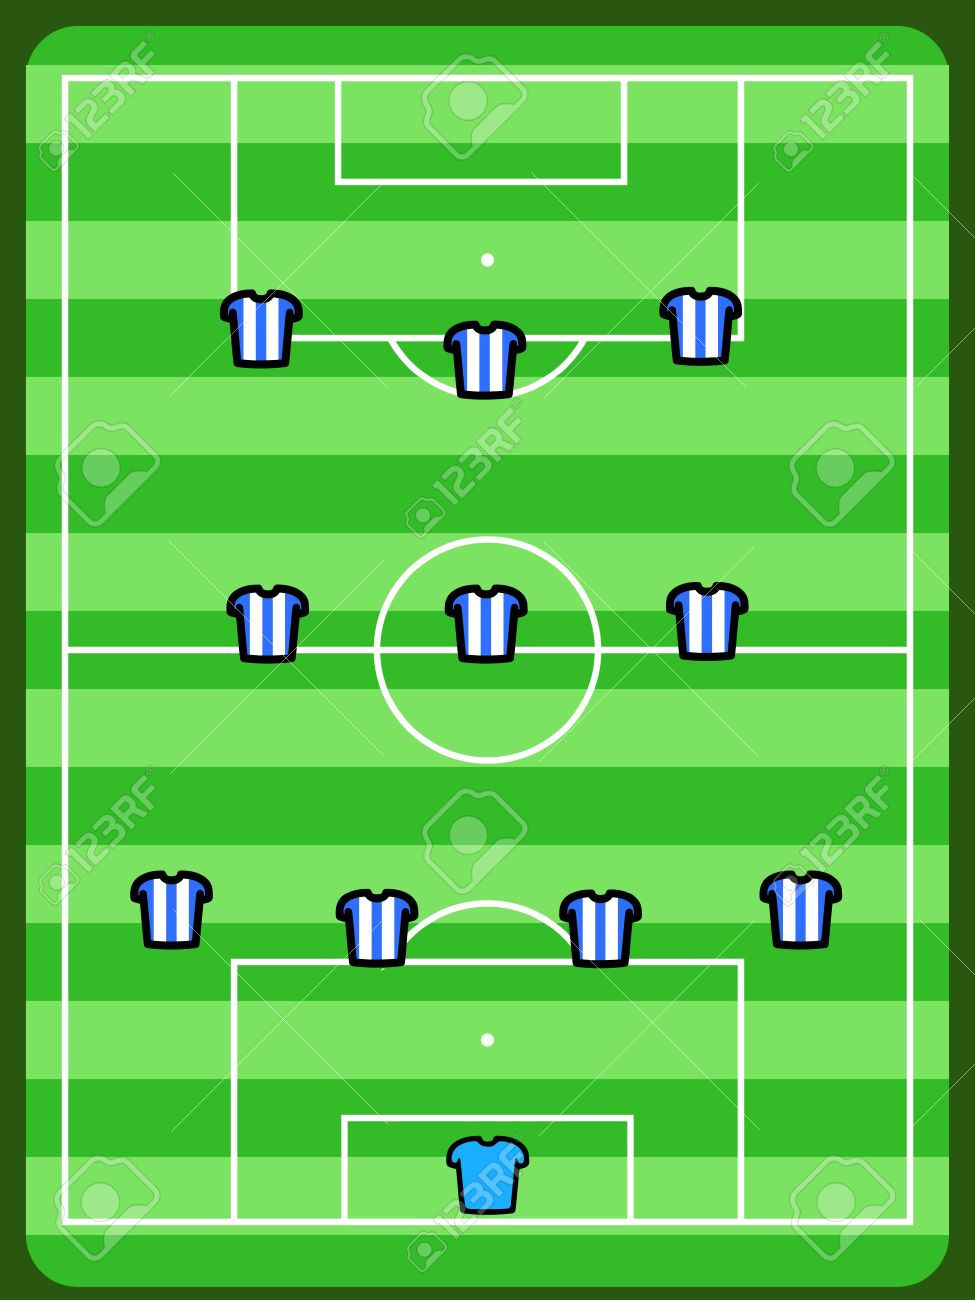 Soccer Field Illustration Football Tactics And Strategy